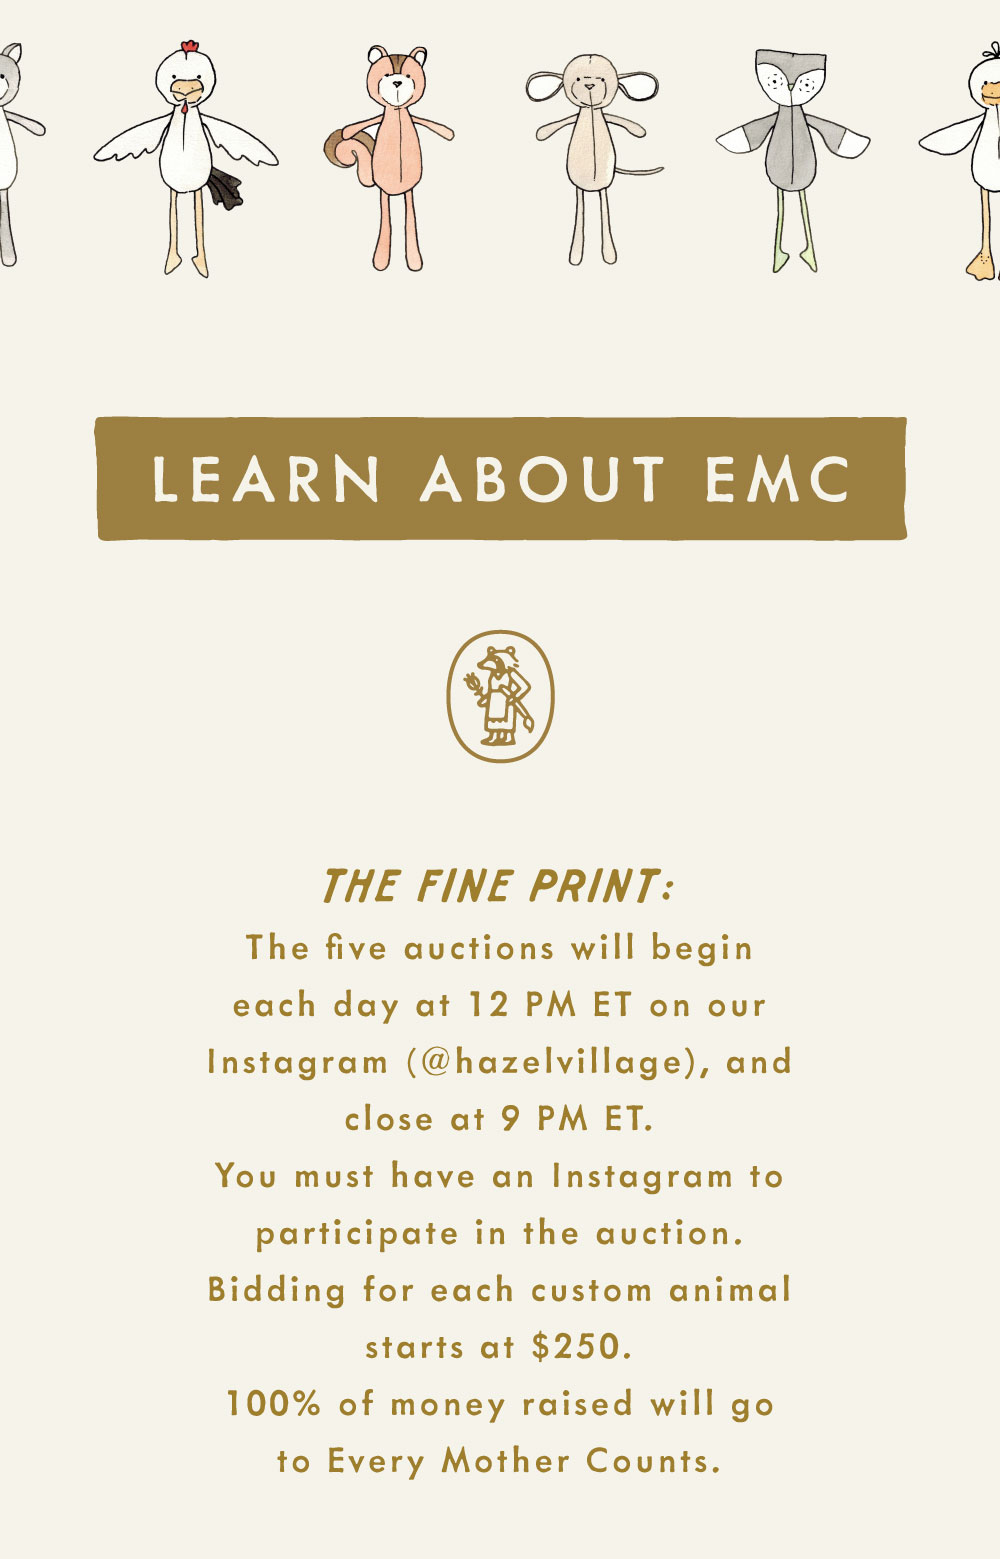 learn about emc